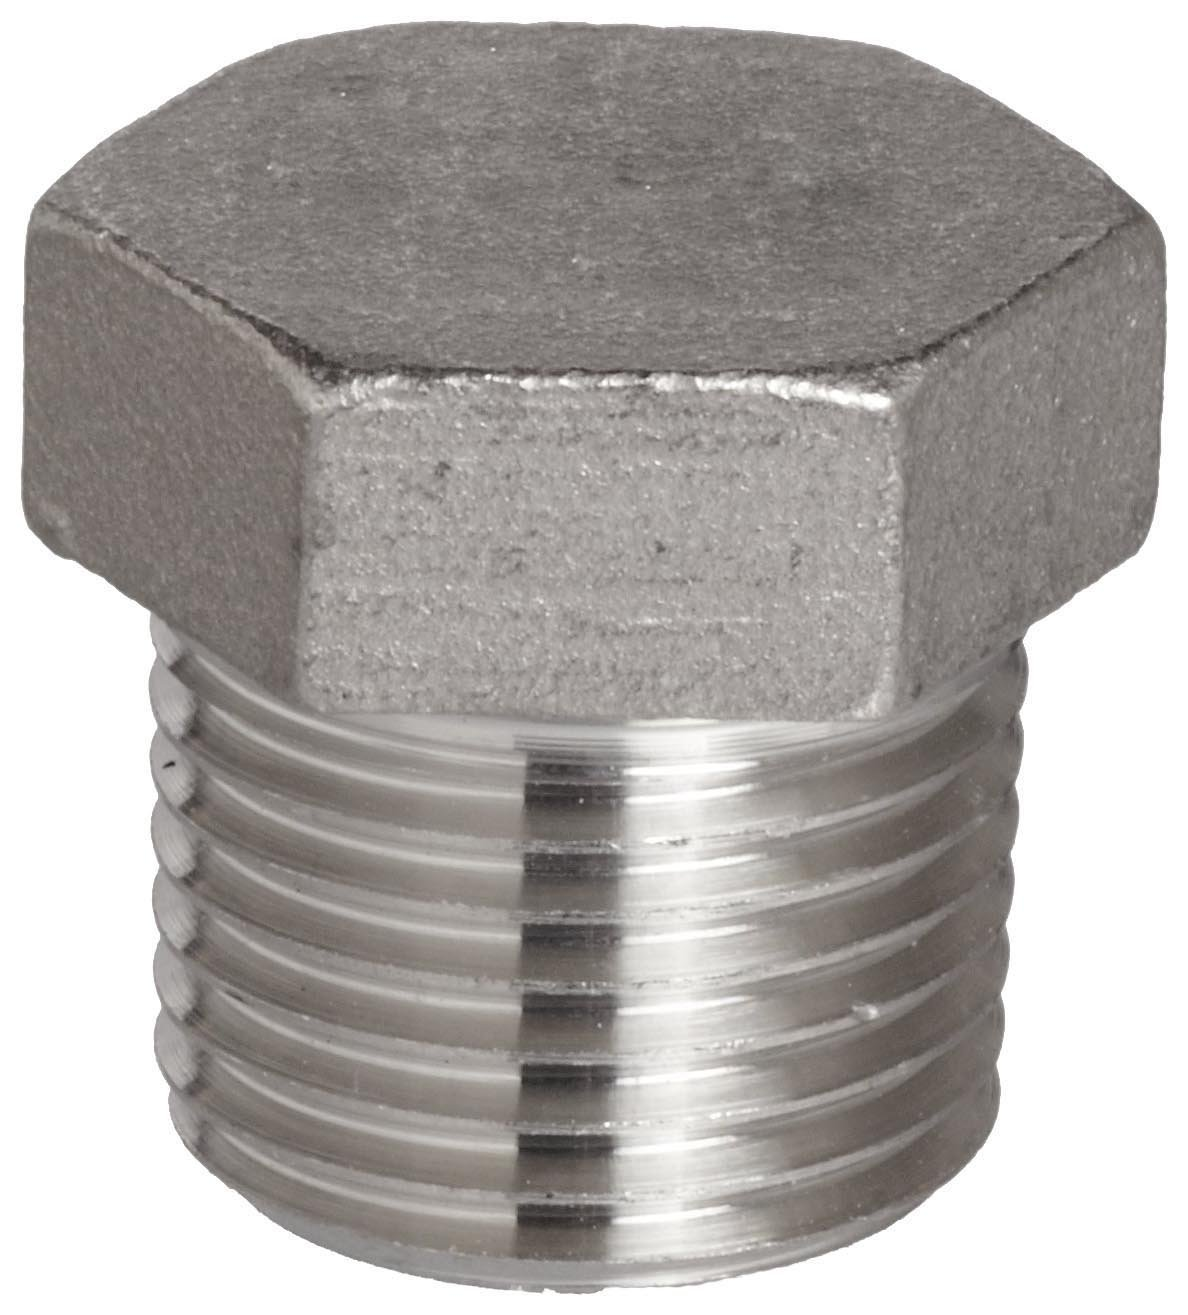 Hex Head Pipe Plug Stainless Steel 304 F400